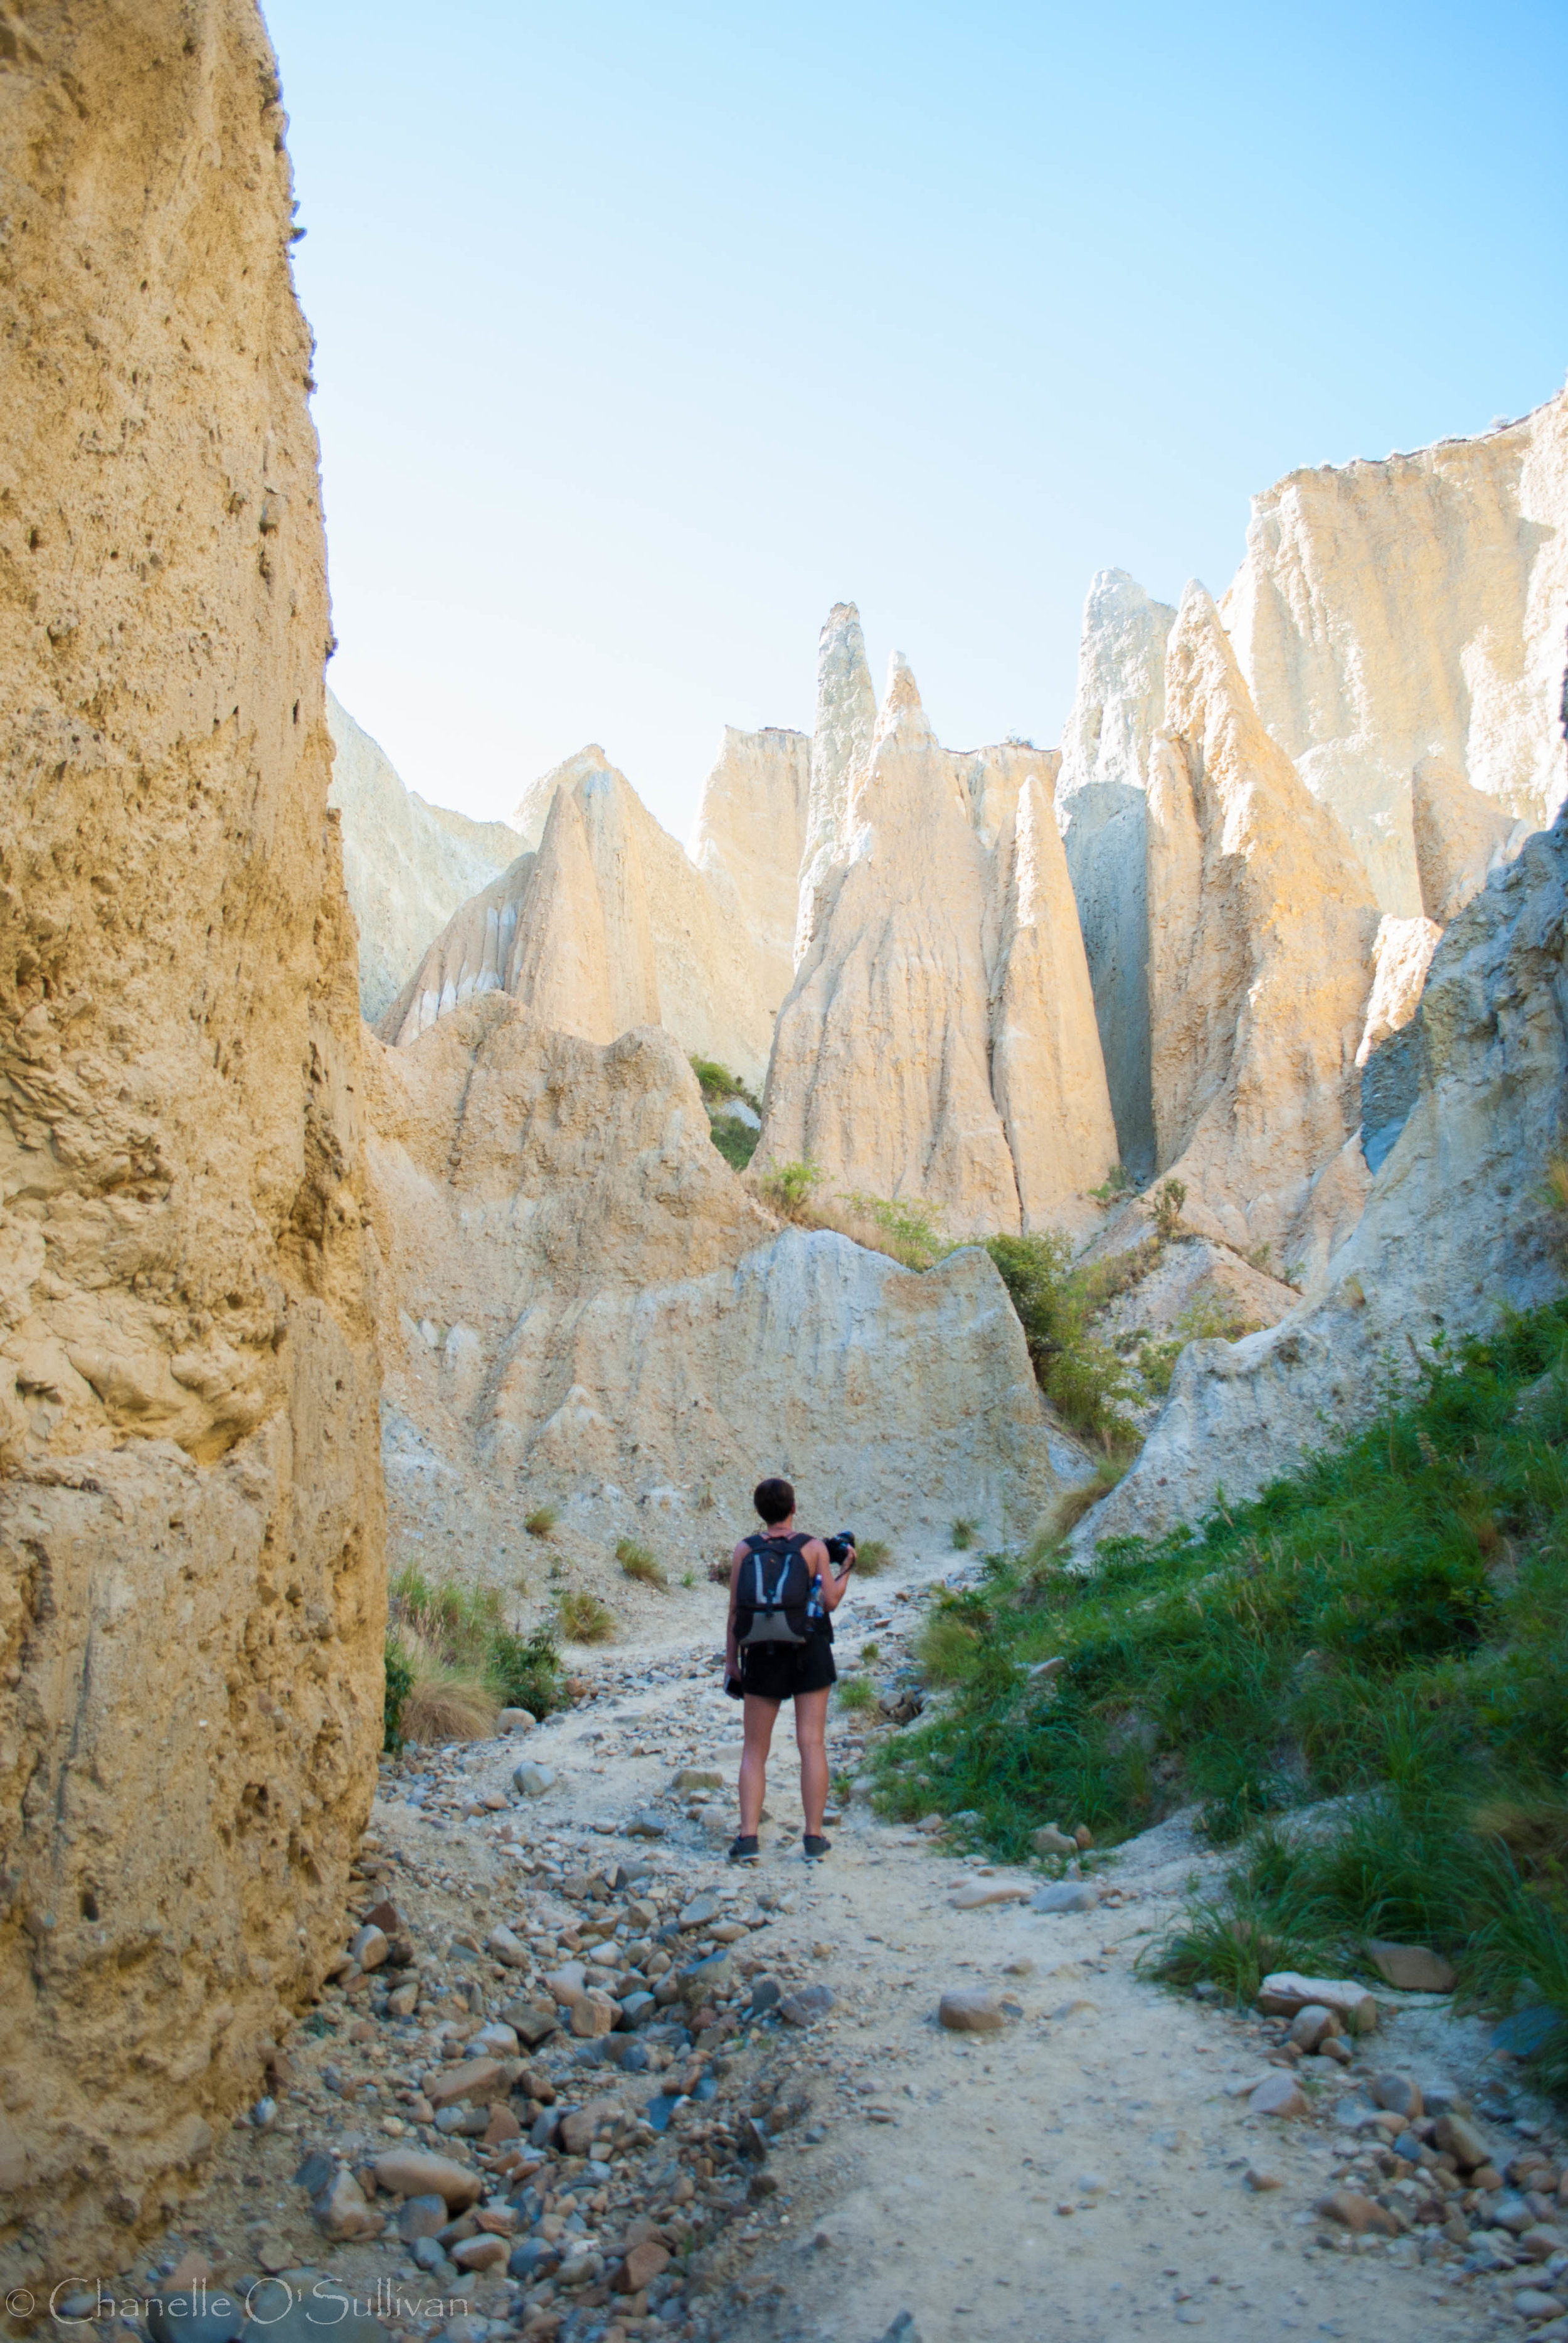 The Clay Cliffs are just out of Omarama and are an incredible, awe inspiring sight. Take $5 in cash for the gateway.